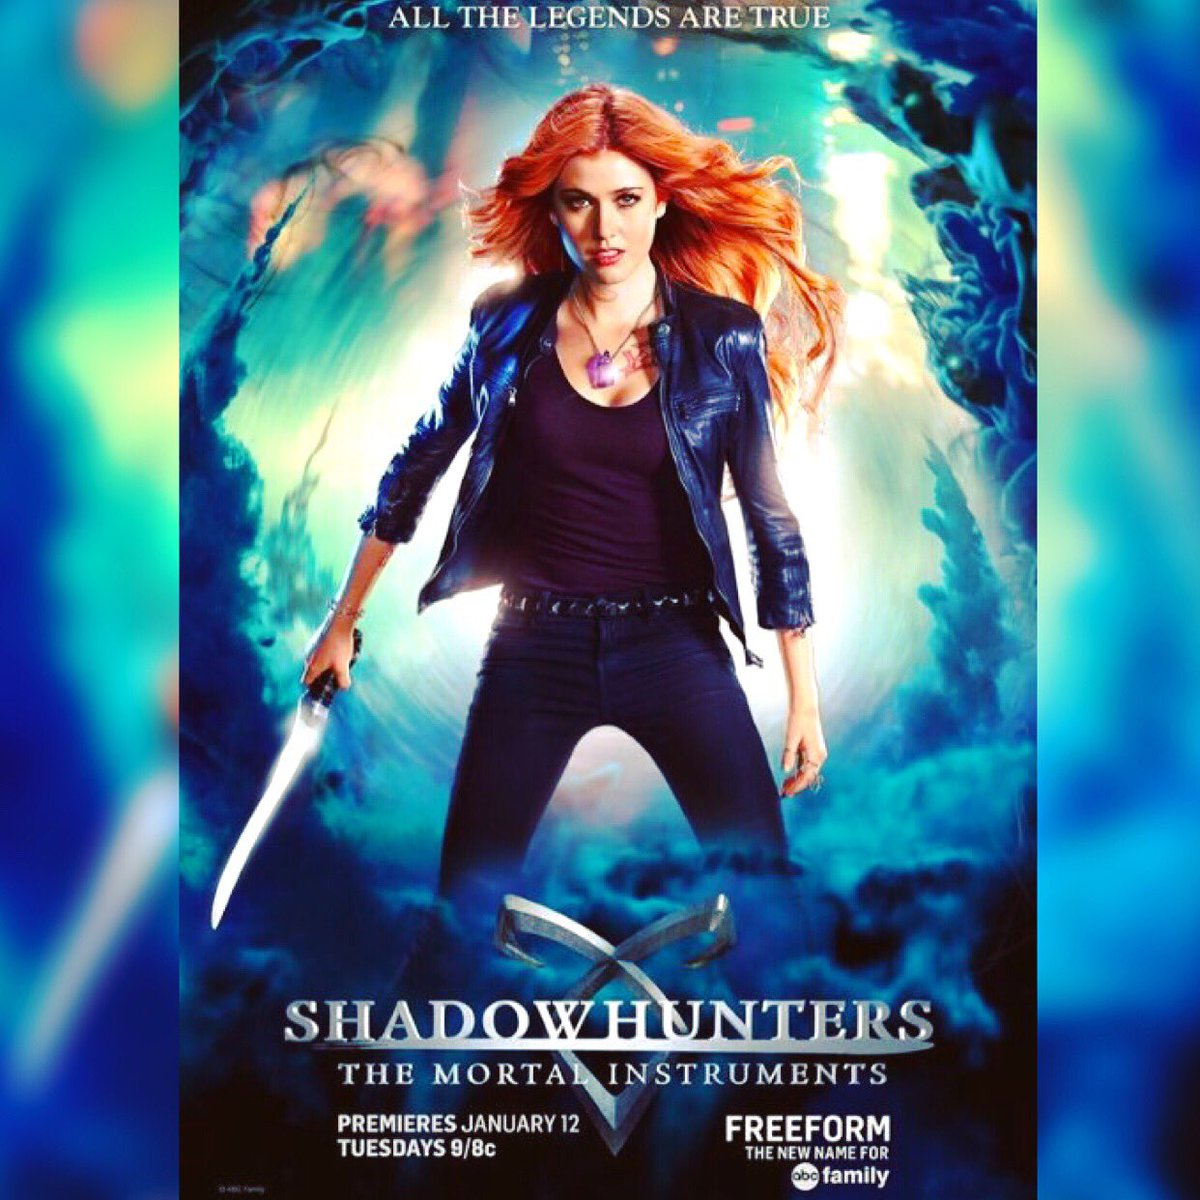 Watch @ShadowhuntersTV tonight at 9/8c to hear a song @Ruellemusic and